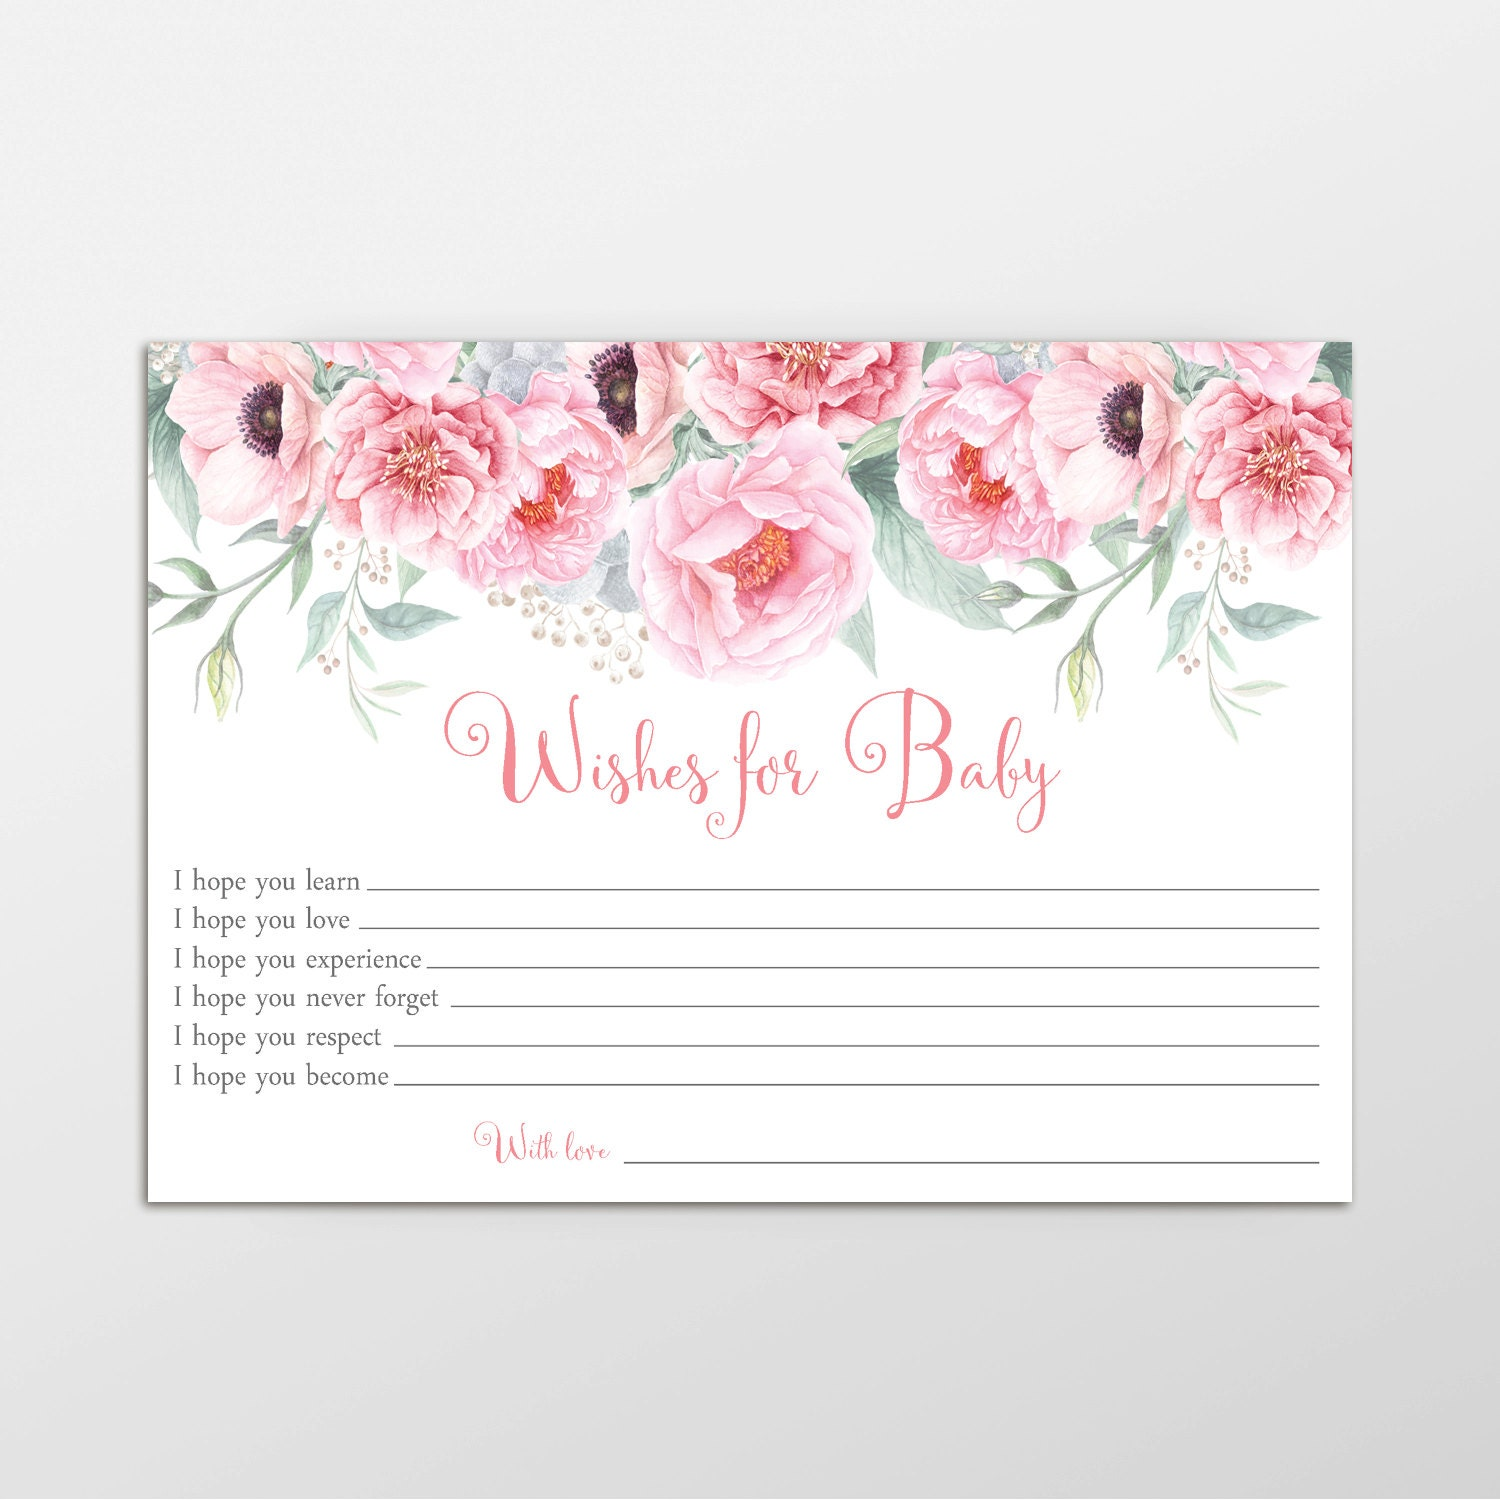 Wishes for baby baby shower game printable game wishes for baby wishes for baby baby shower game printable game wishes for baby card well wishes for baby baby wishes instant download pink floral kristyandbryce Image collections